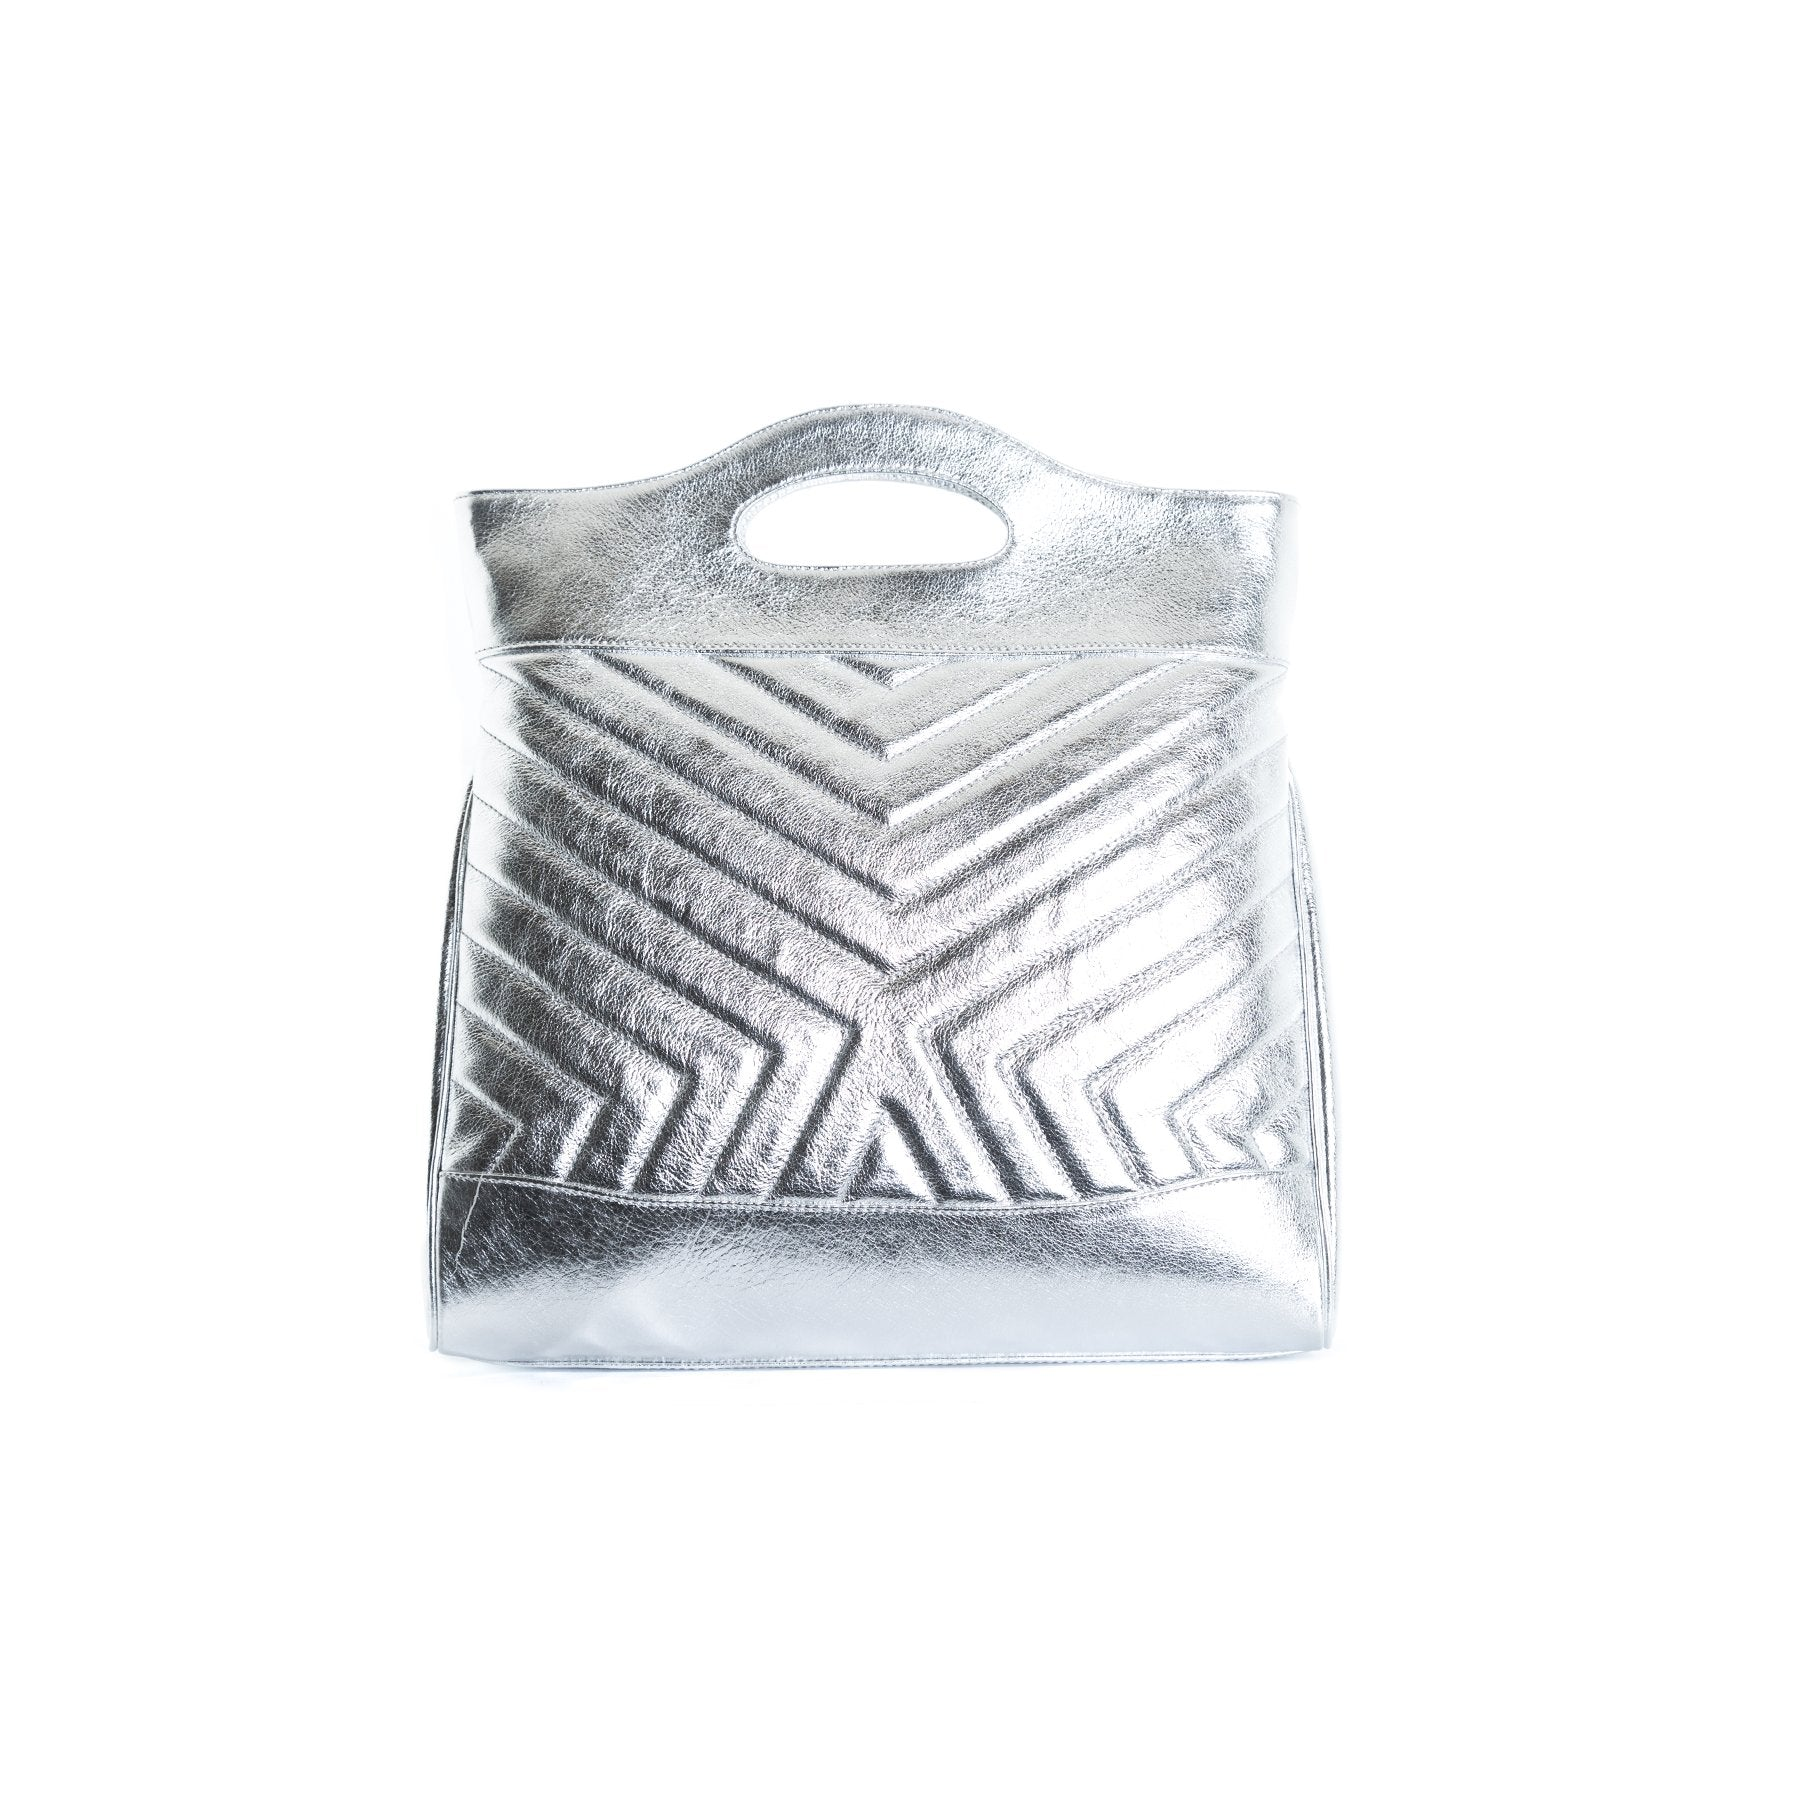 Alexi Silver Leather Tote Bags